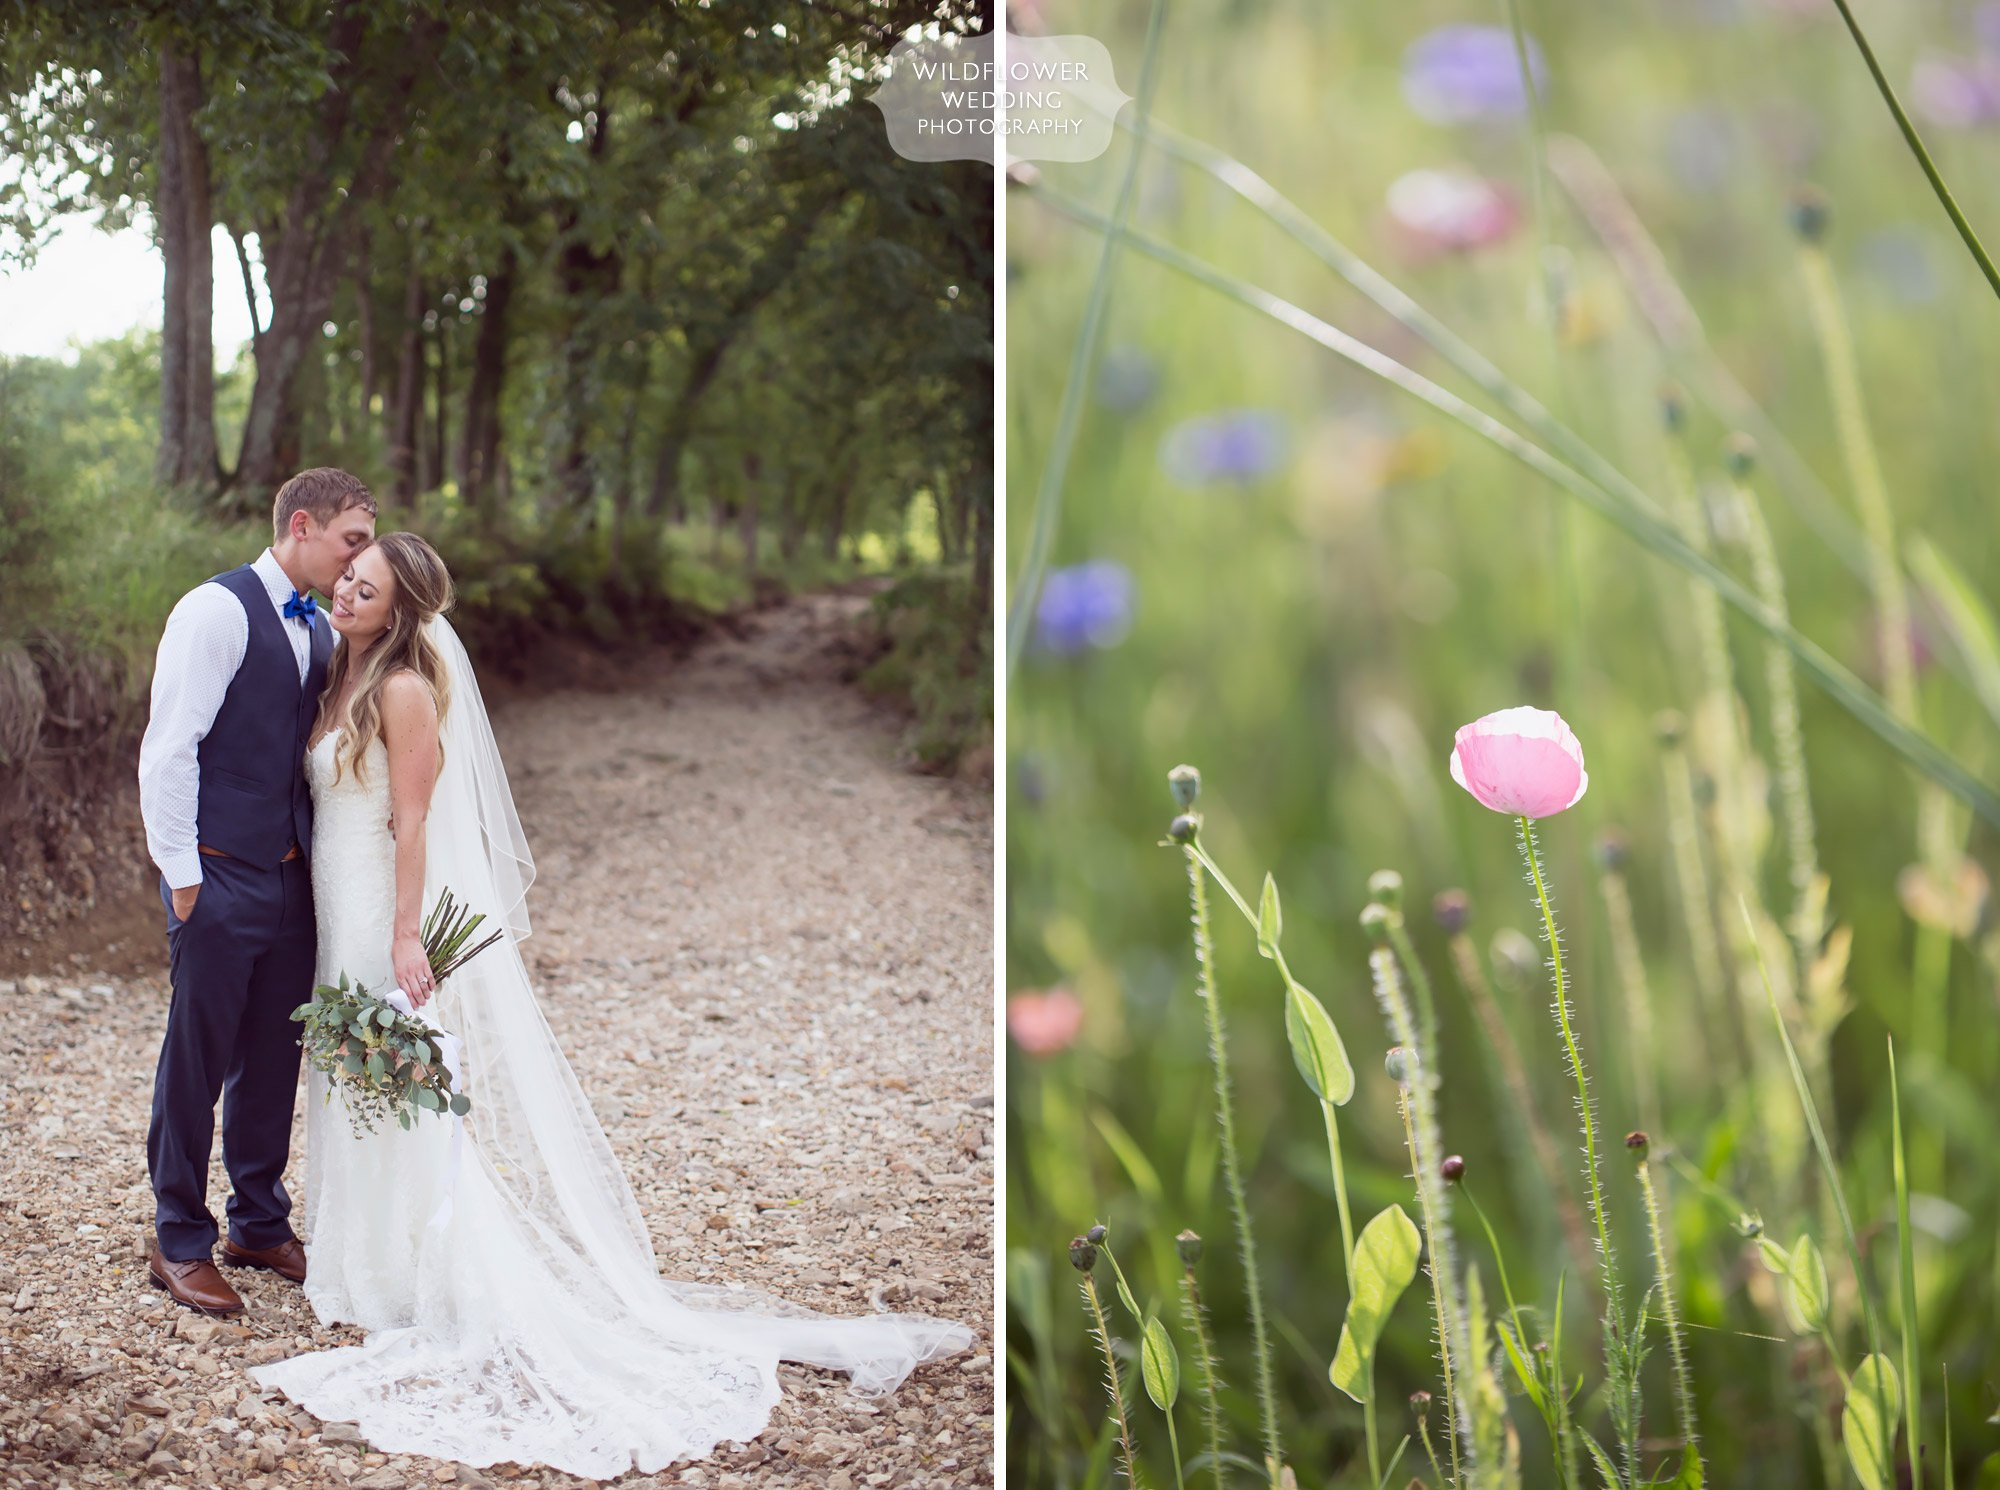 Bride and groom pose in the creek bed outside of the Kempker's Back 40 wedding venue with fields of wildflowers.